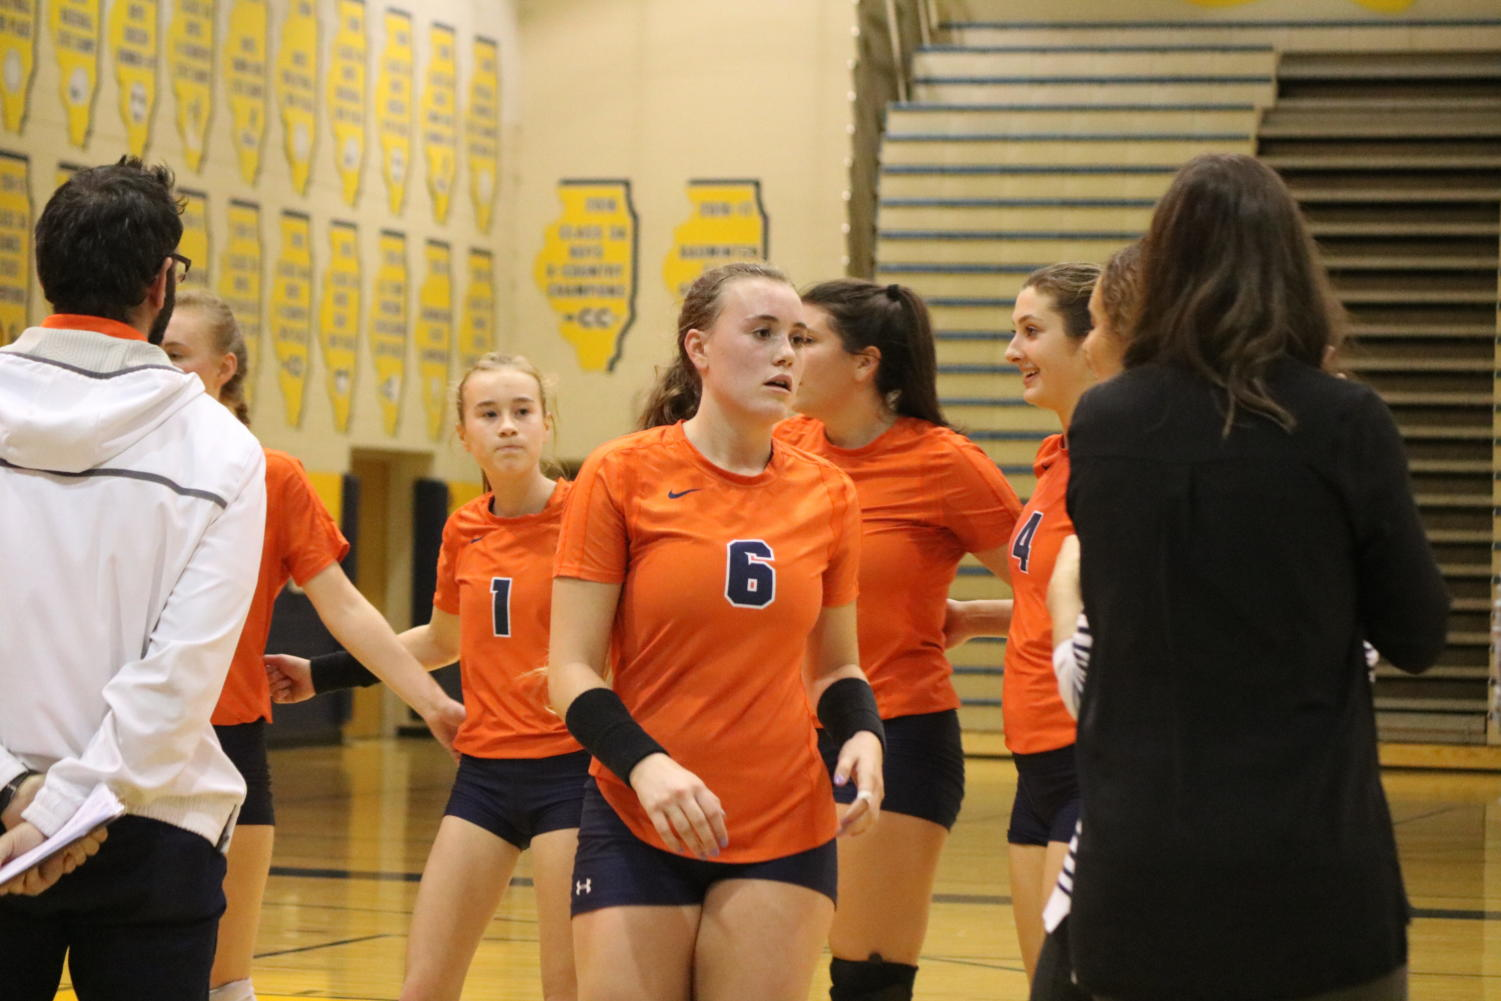 Girls Volleyball Suffers Rare Loss The North Star Penny In Fuse Box Explosion